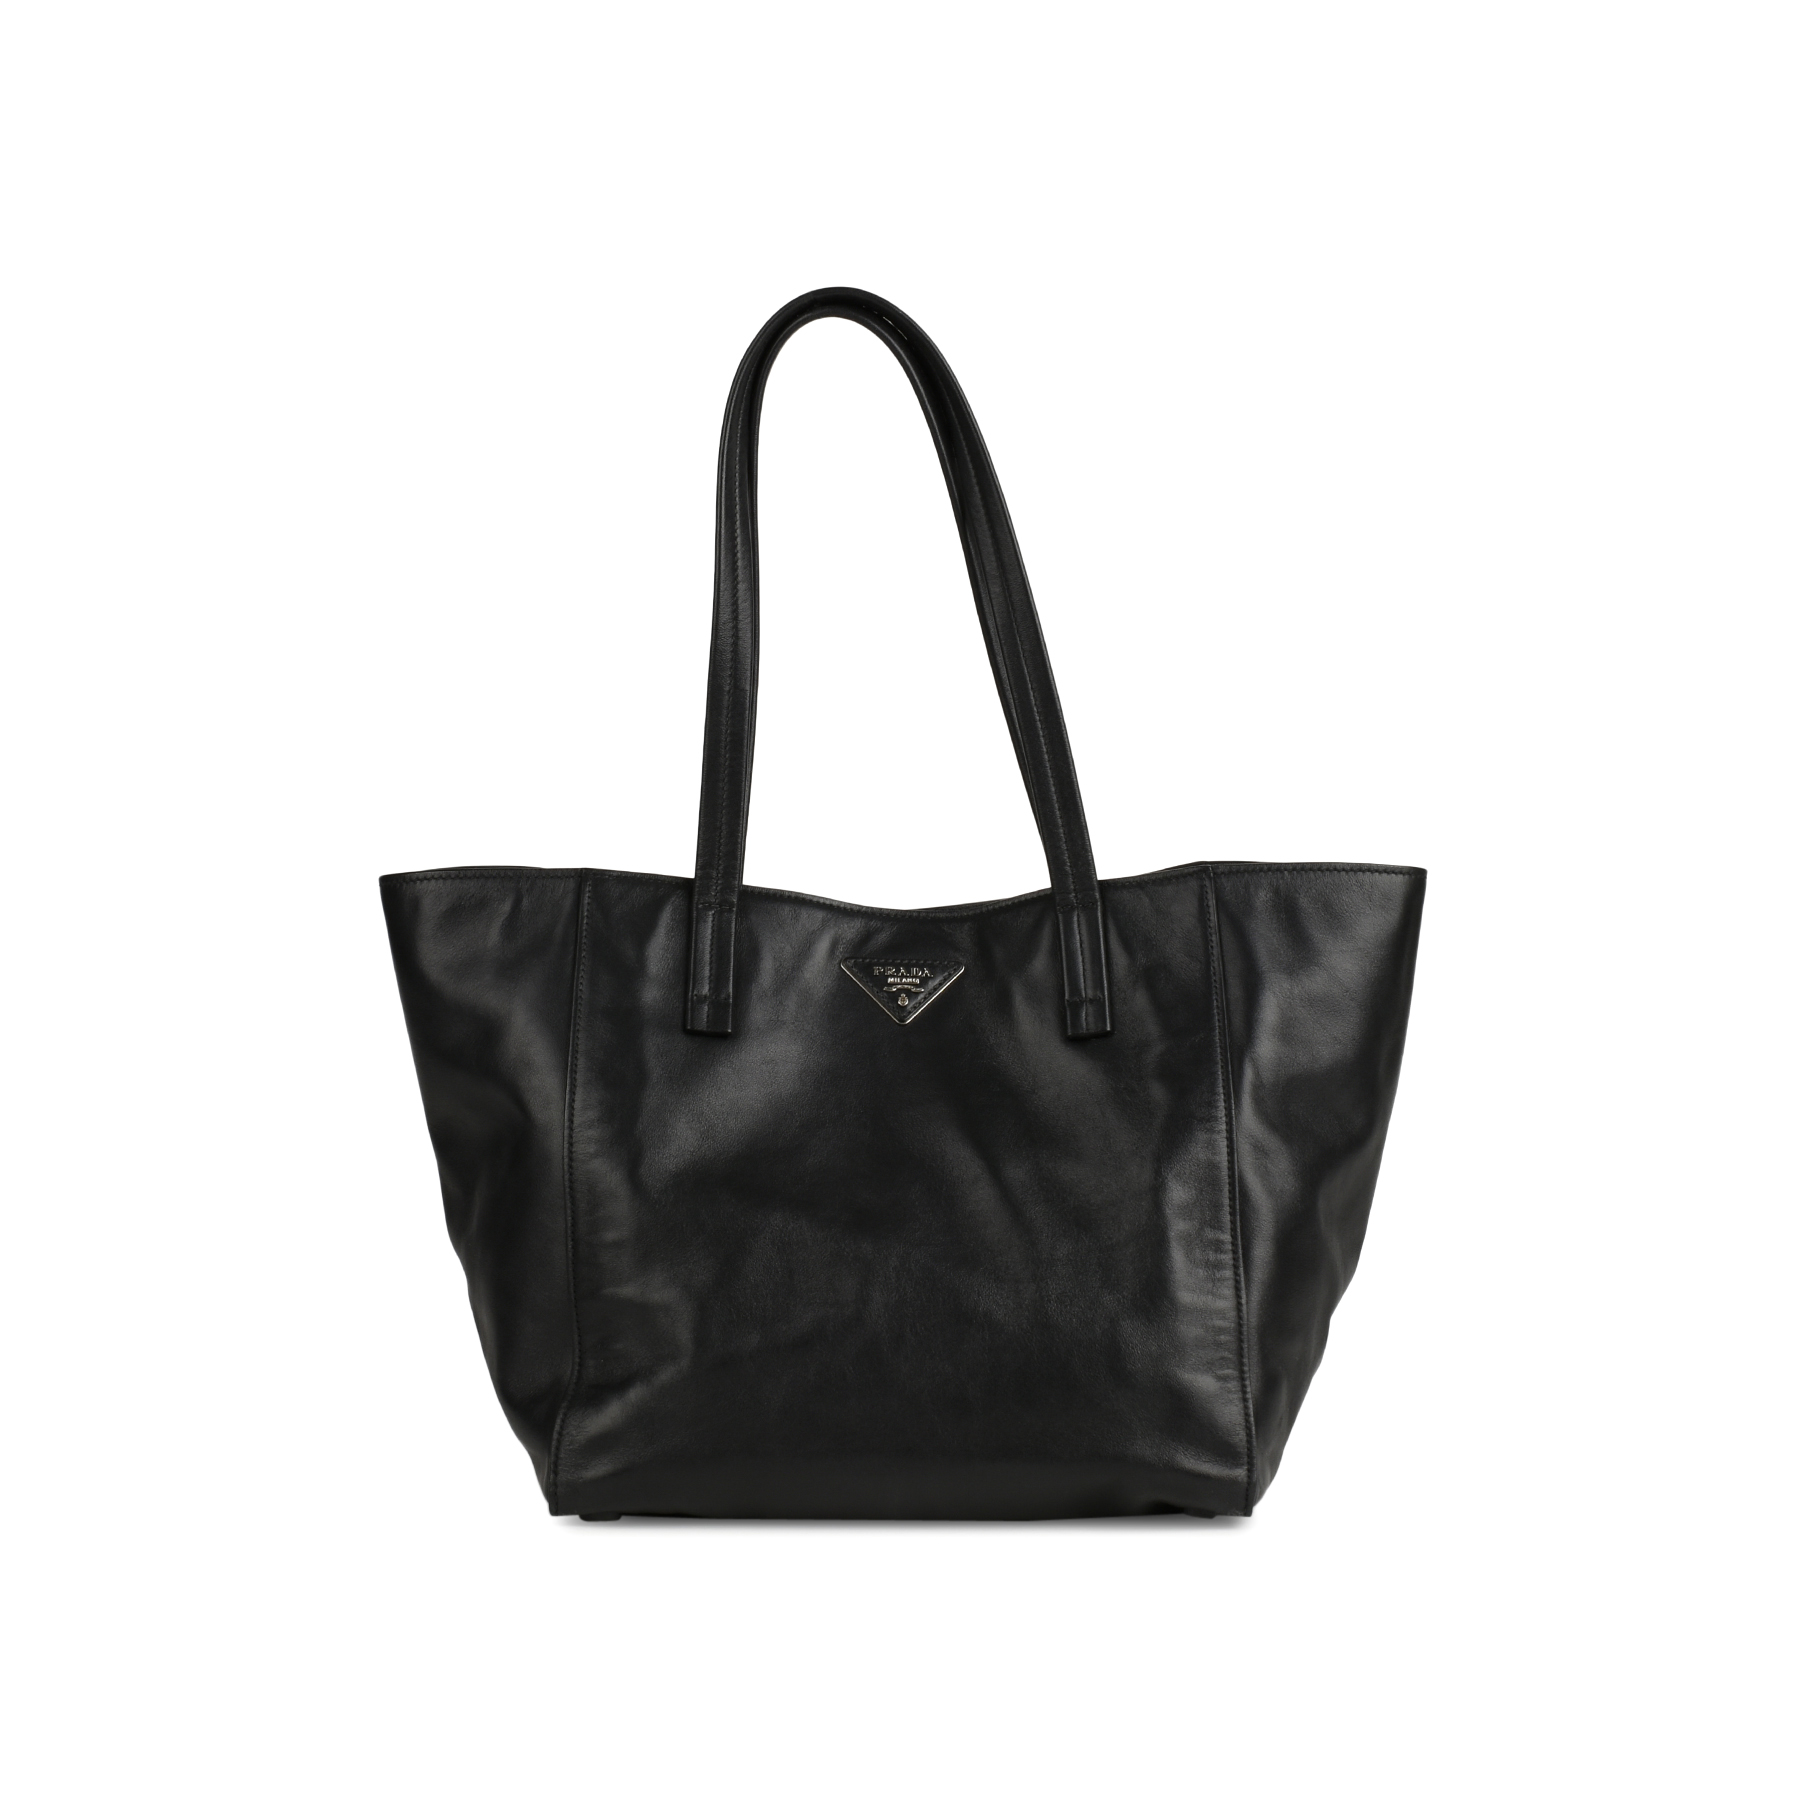 ff4a303fb637 ... canada authentic pre owned prada soft calf skin leather tote bag pss  145 00159 the fifth